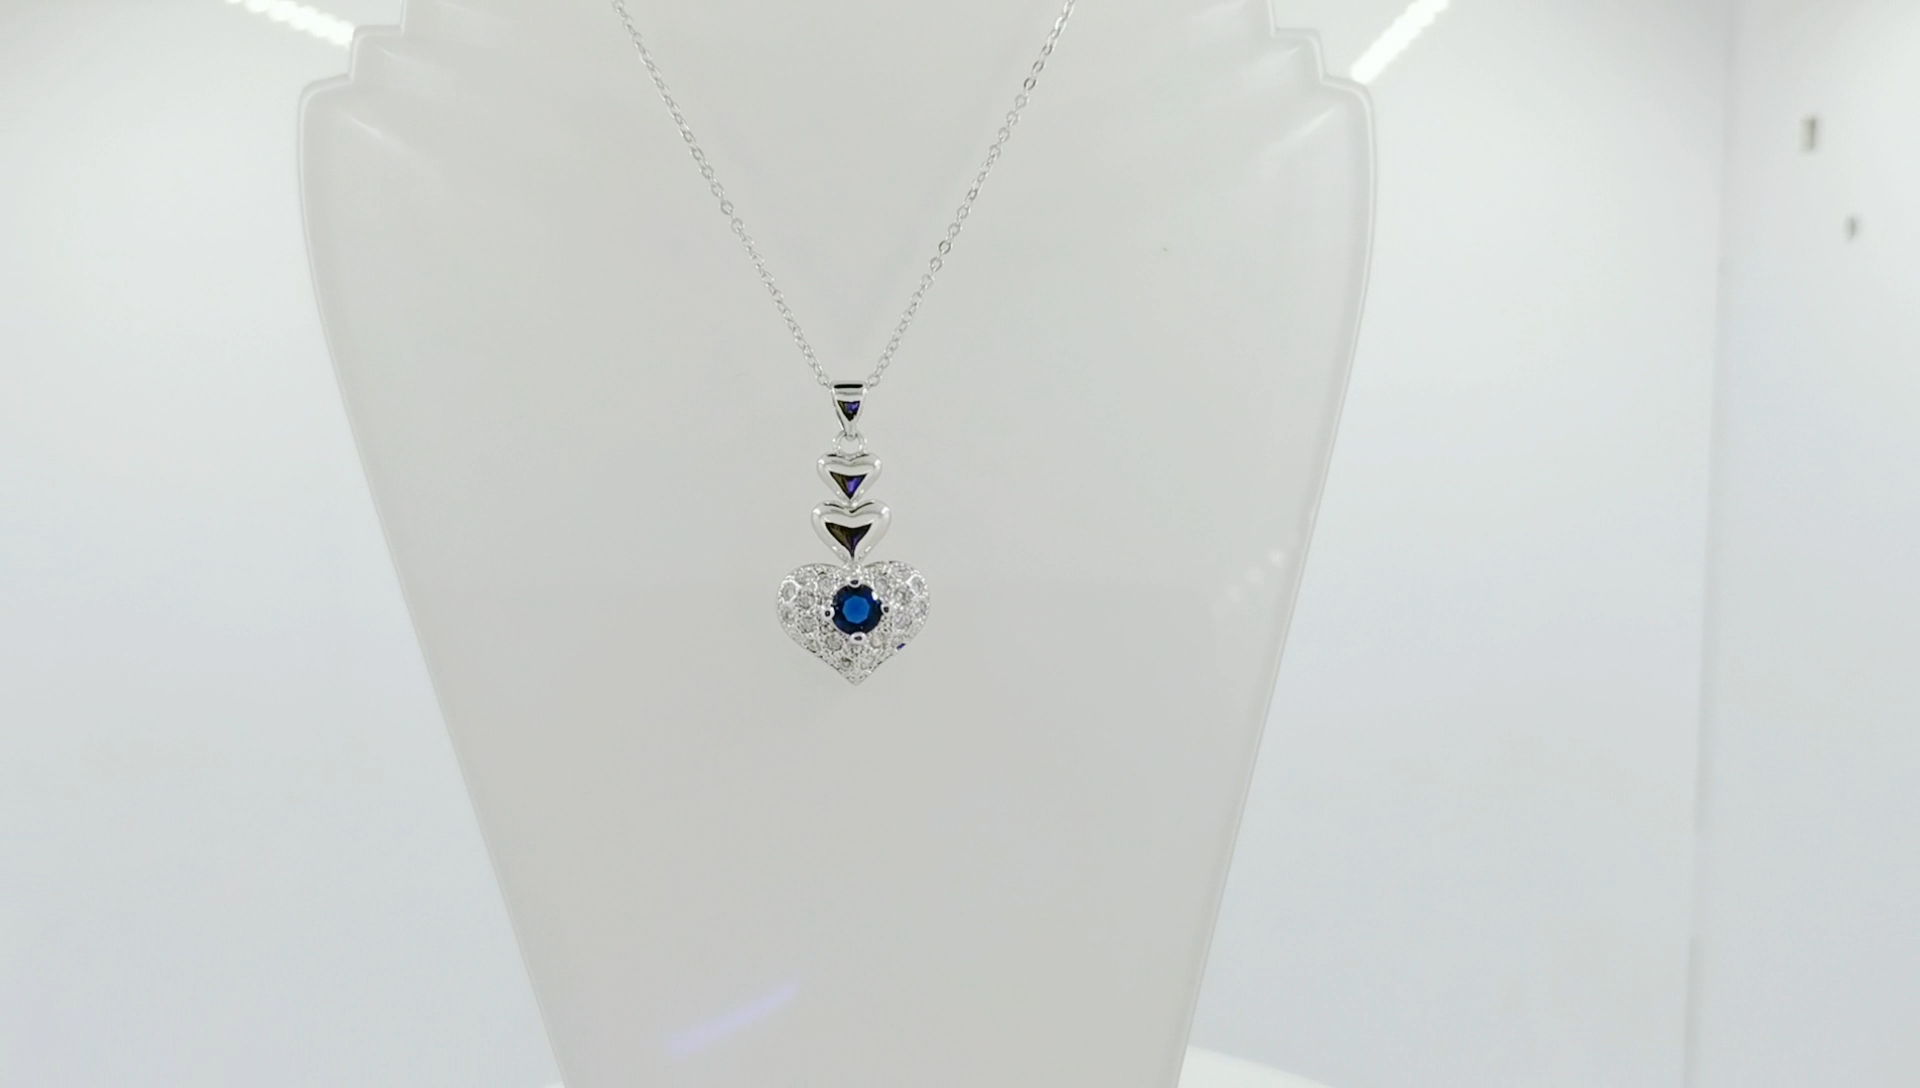 Luxury Personalized Healing Crystal Silver Heart Pendant Cubic Zirconia Silver Jewelry 925 Sterling Necklace